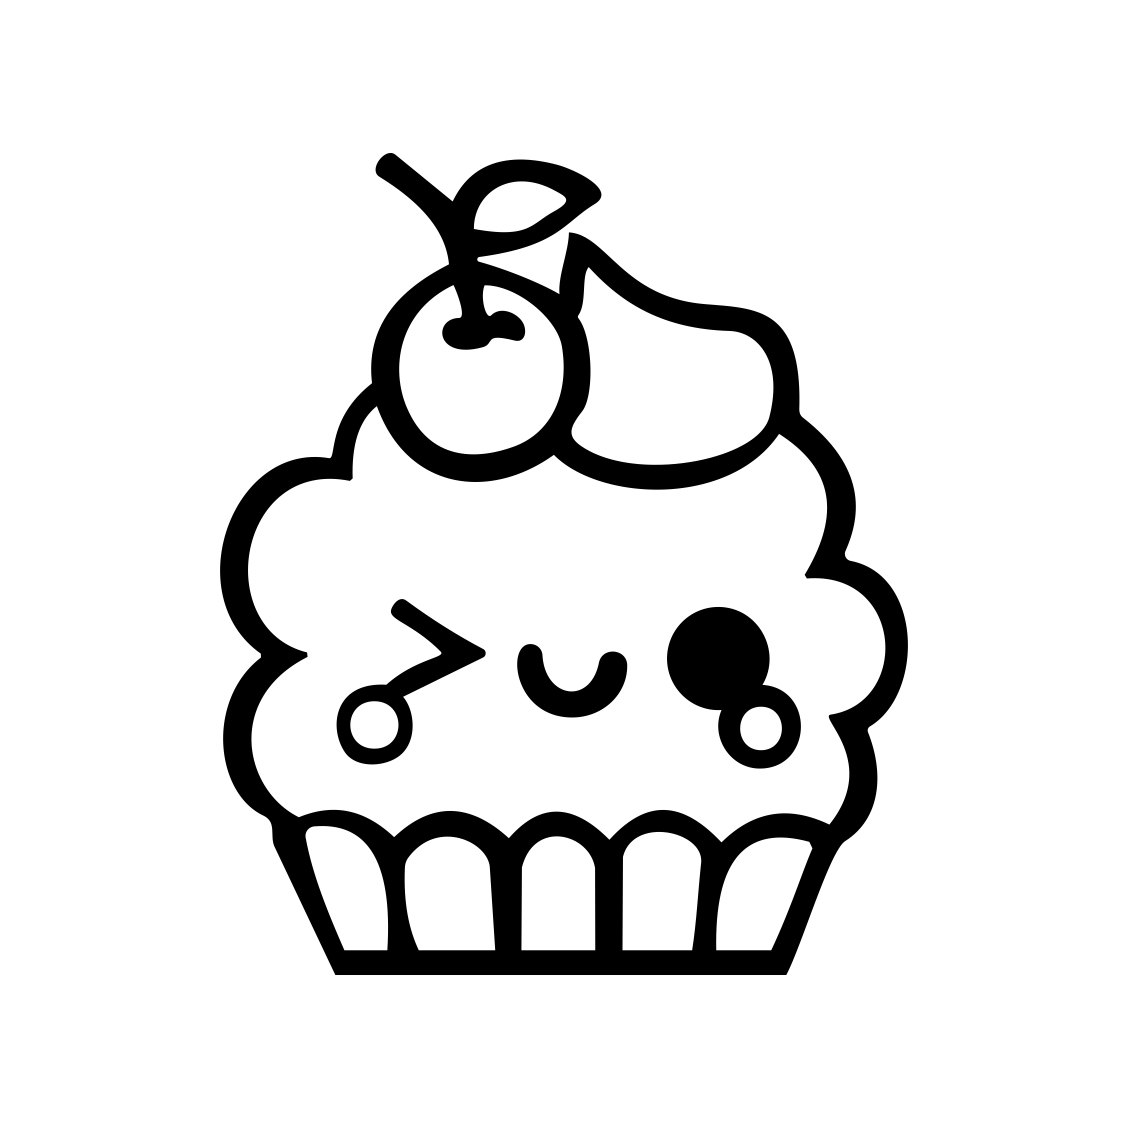 Cute Kawaii Cupcake Graphics Design Svg Eps By